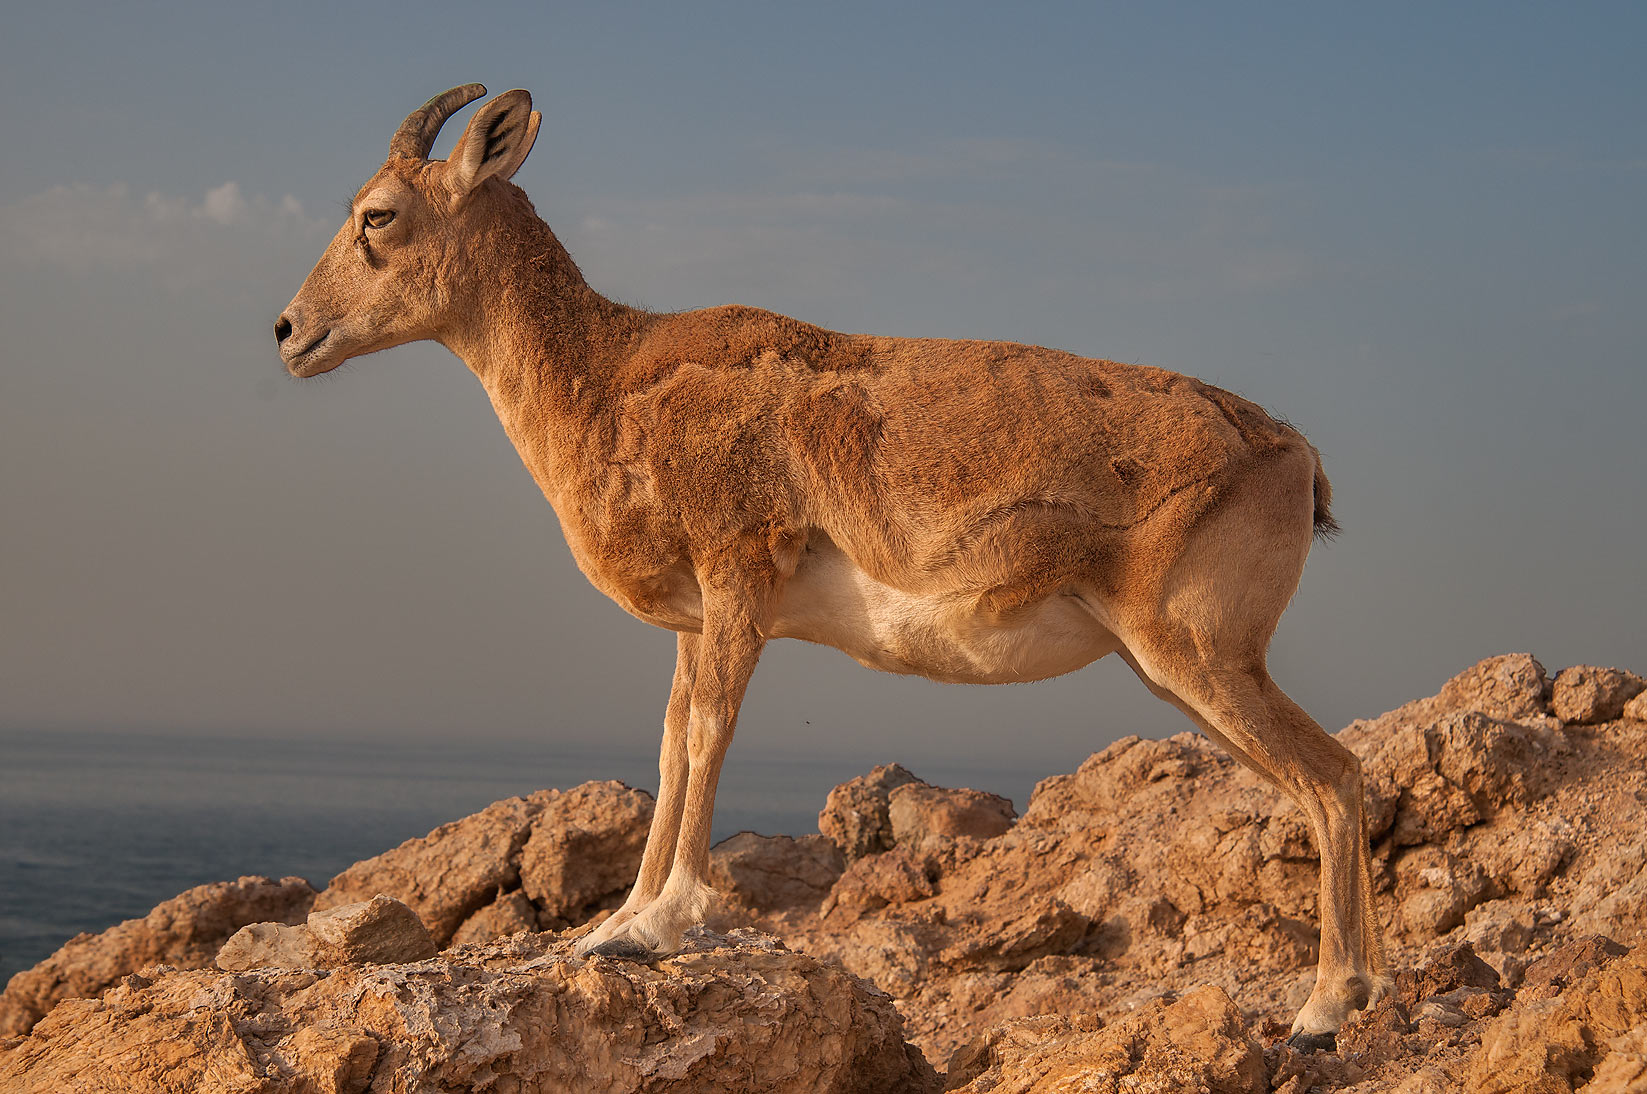 Mountain goat standing on rocks of northern tip of Haloul Island (Jazirat Halul). Qatar